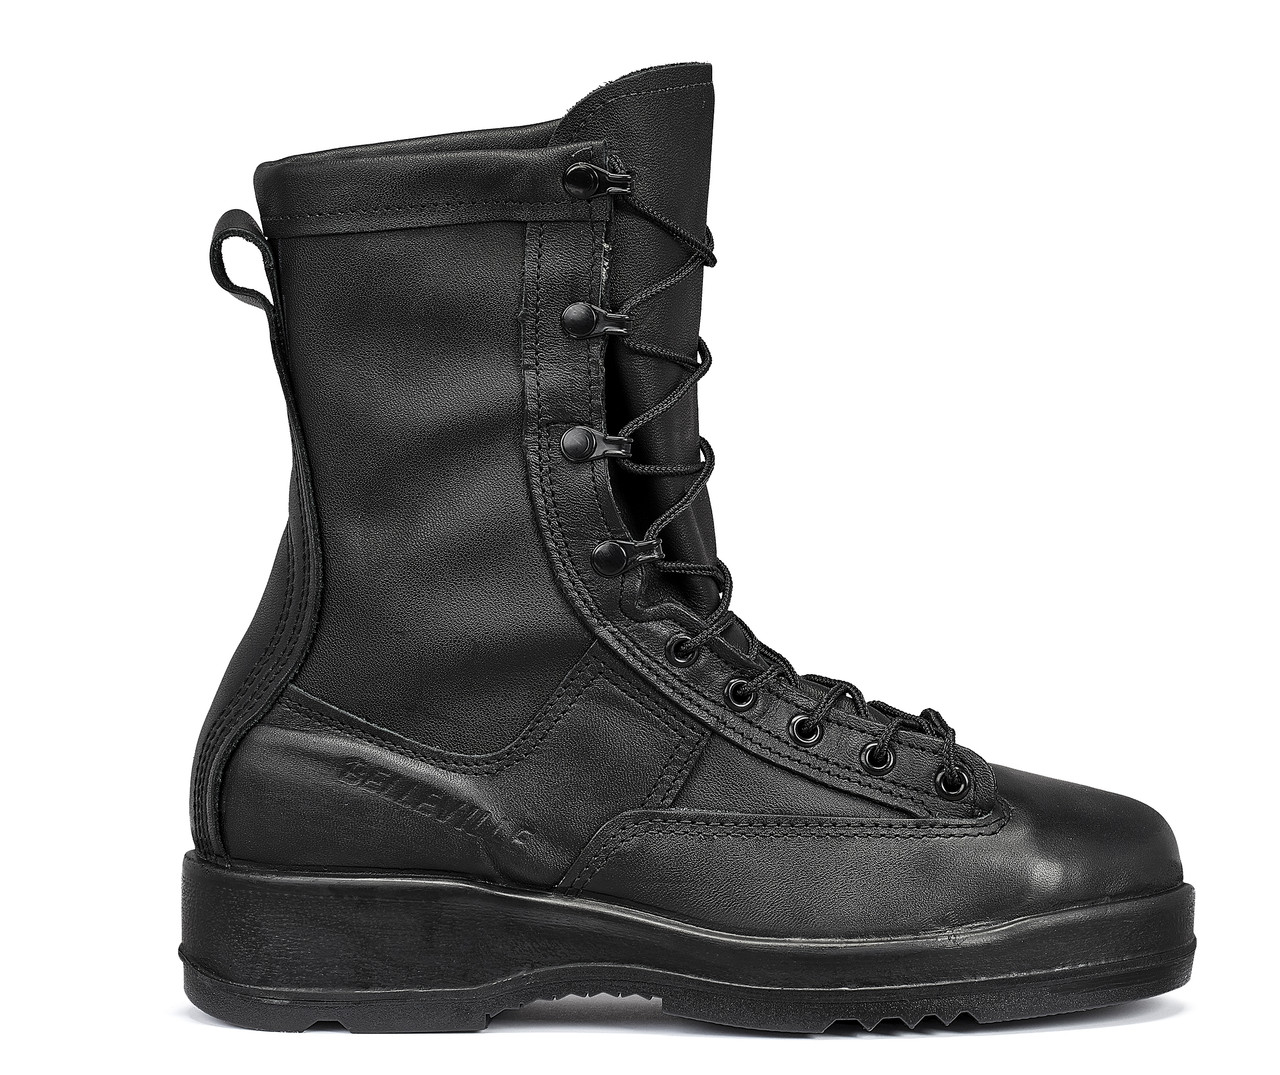 BELLEVILLE 880 ST COLDER WEATHER 200g INSULATED WATERPROOF STEEL TOE BOOTS